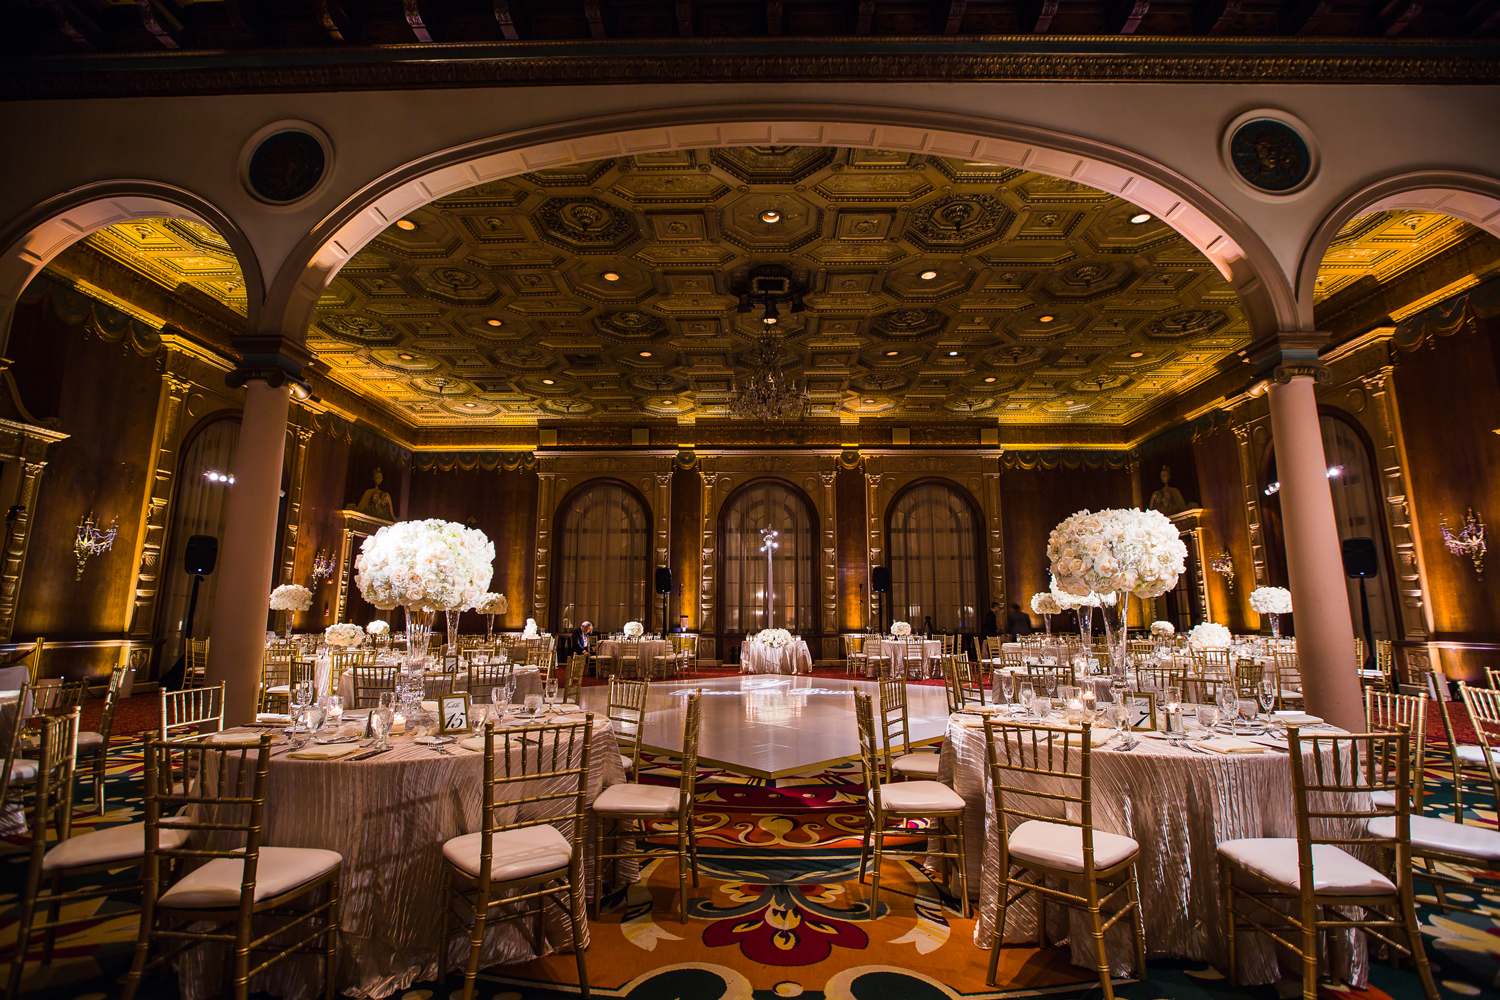 Biltmore-Hotel-Los-Angeles-Wedding.jpg